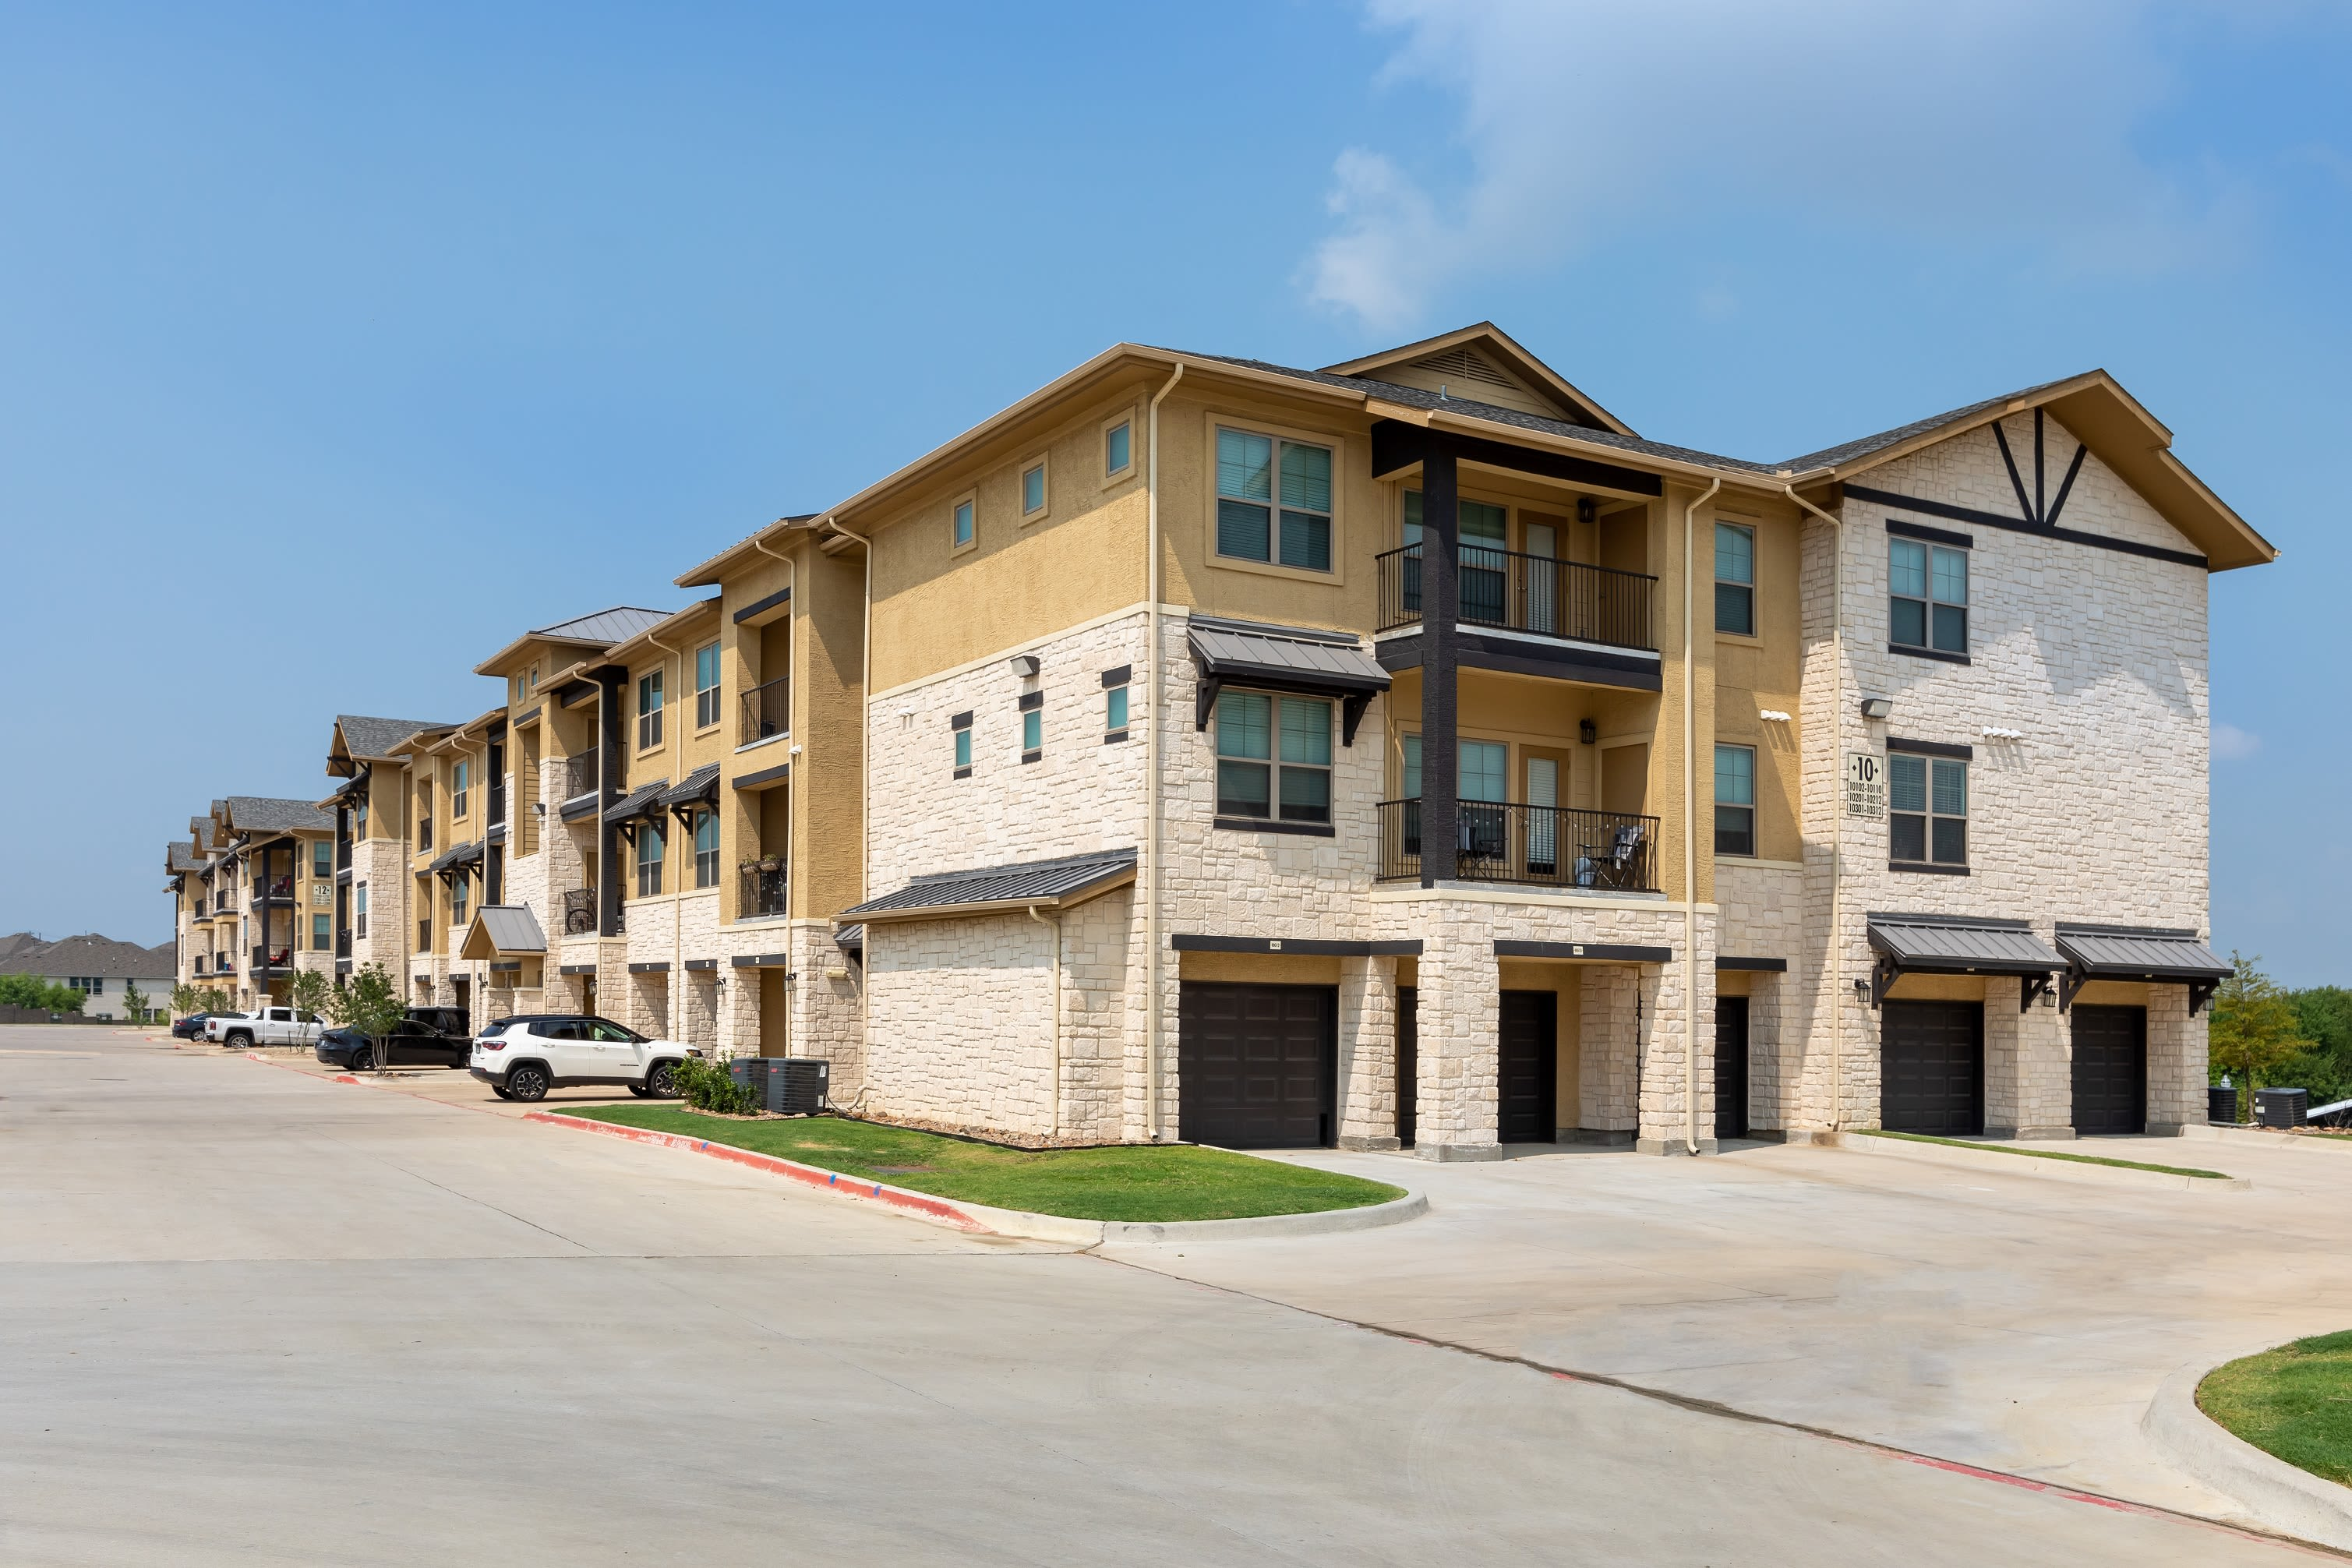 Garages for select units at 4 Corners Apartments in Frisco, Texas